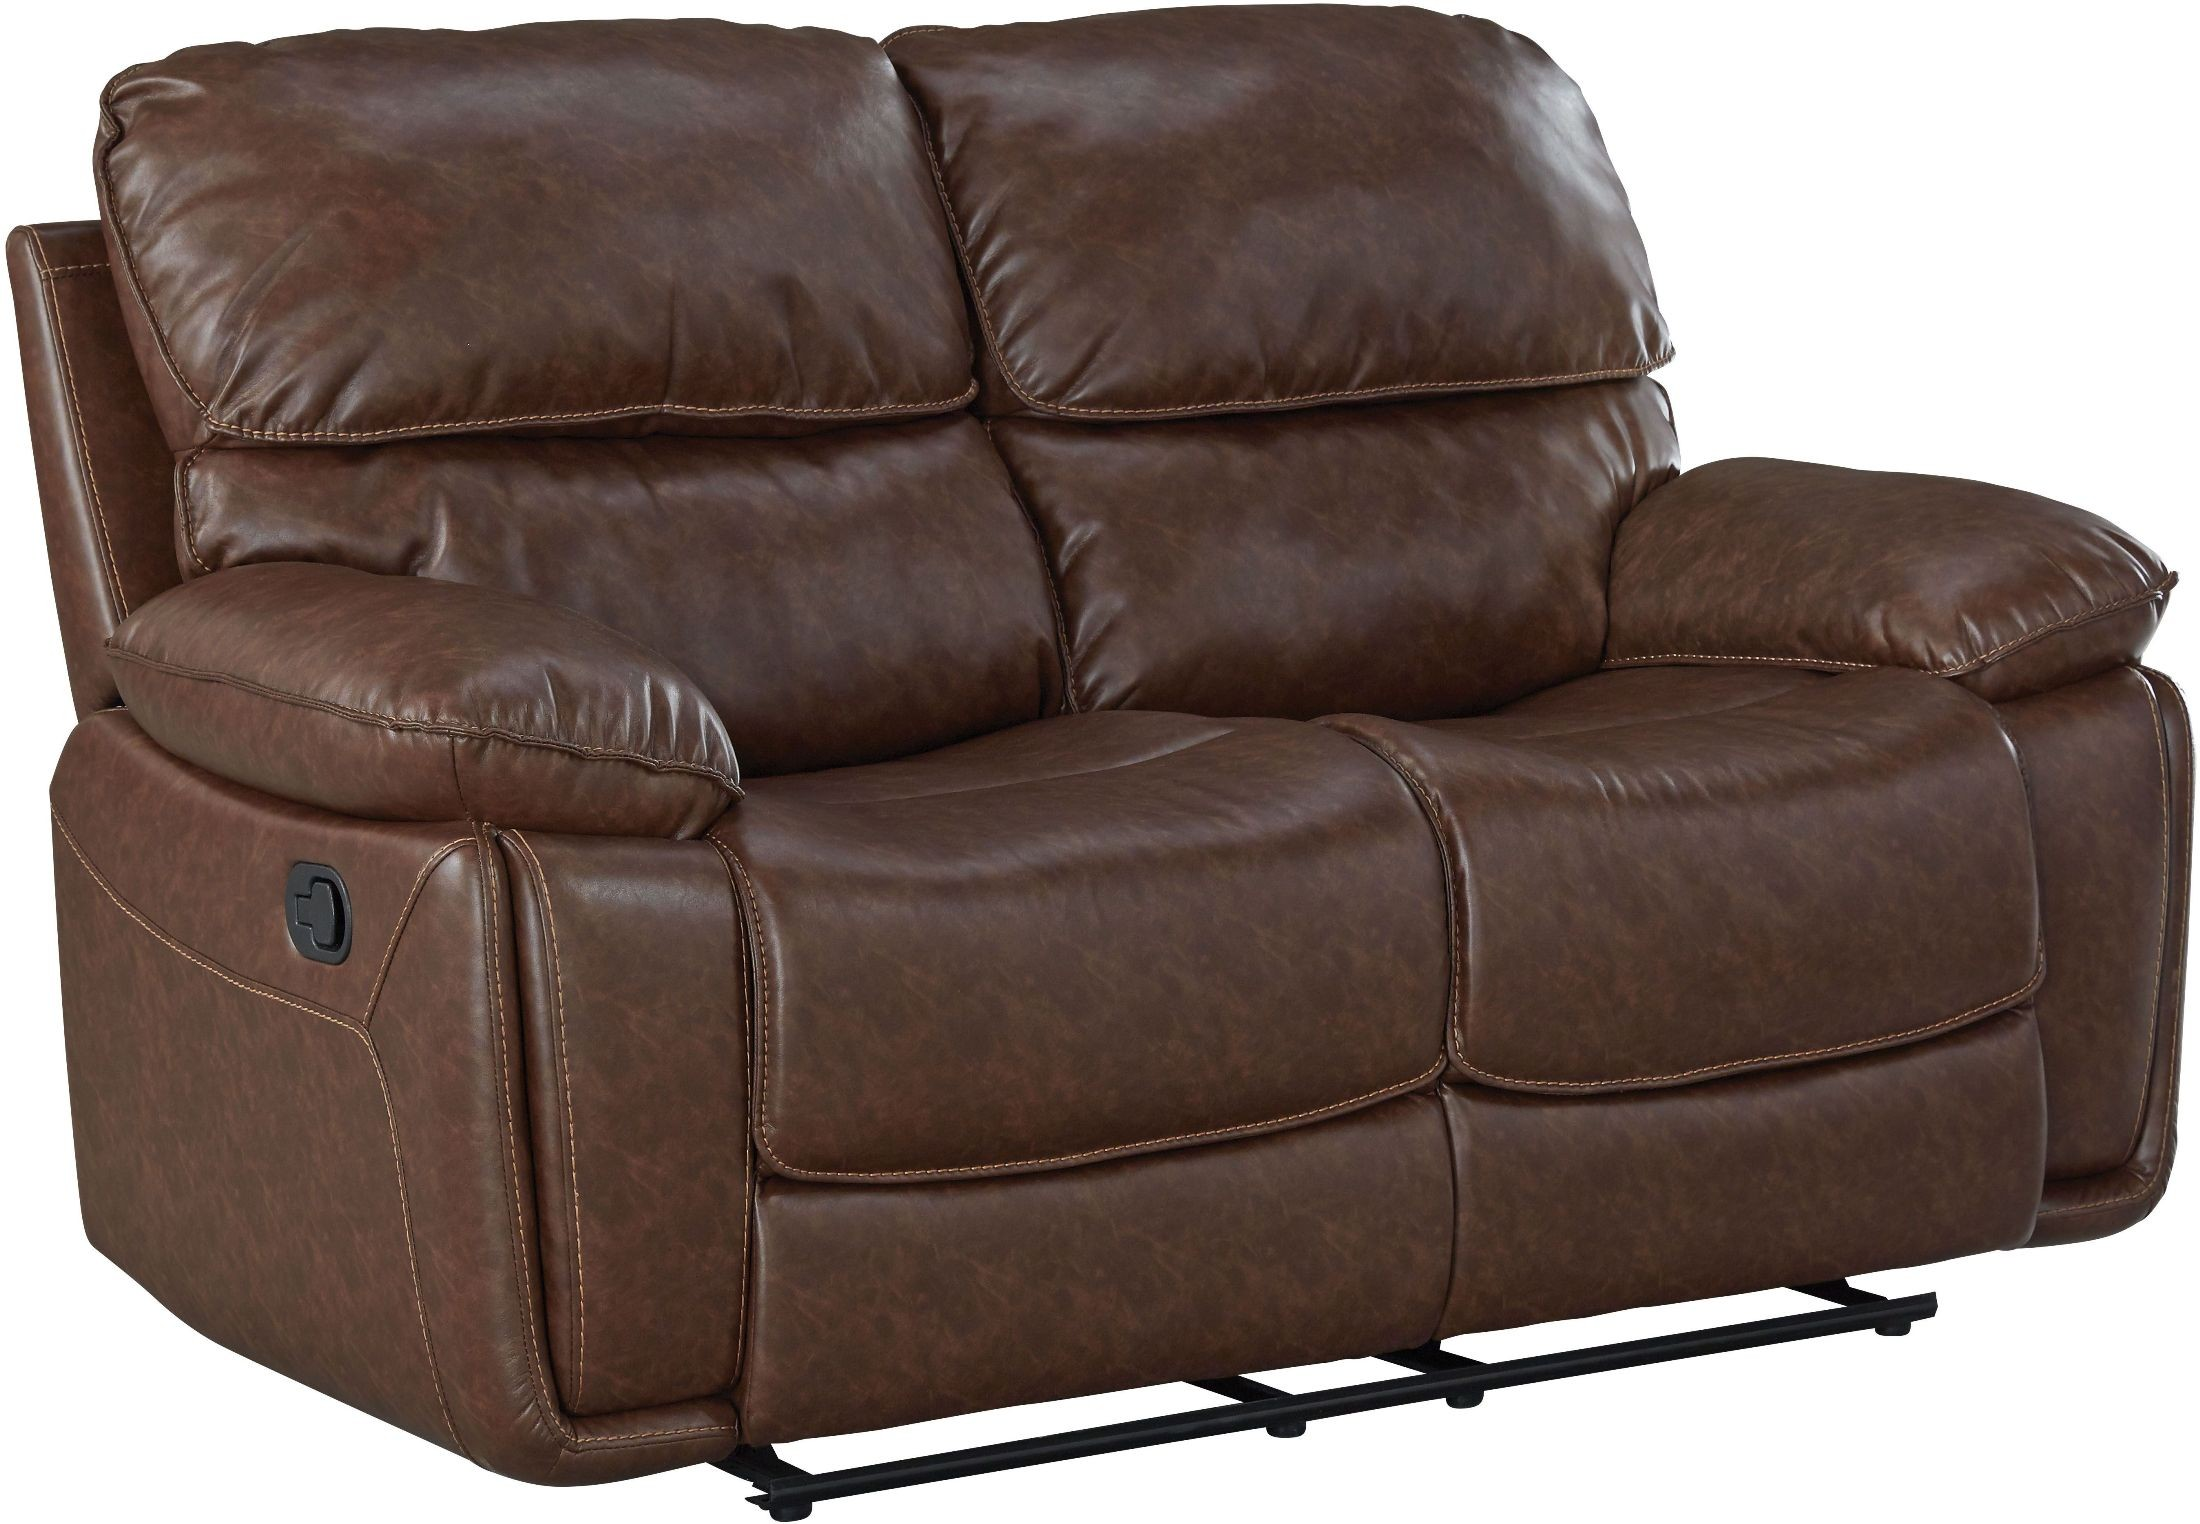 Colson Red Brown Reclining Loveseat From Standard Furniture Coleman Furniture